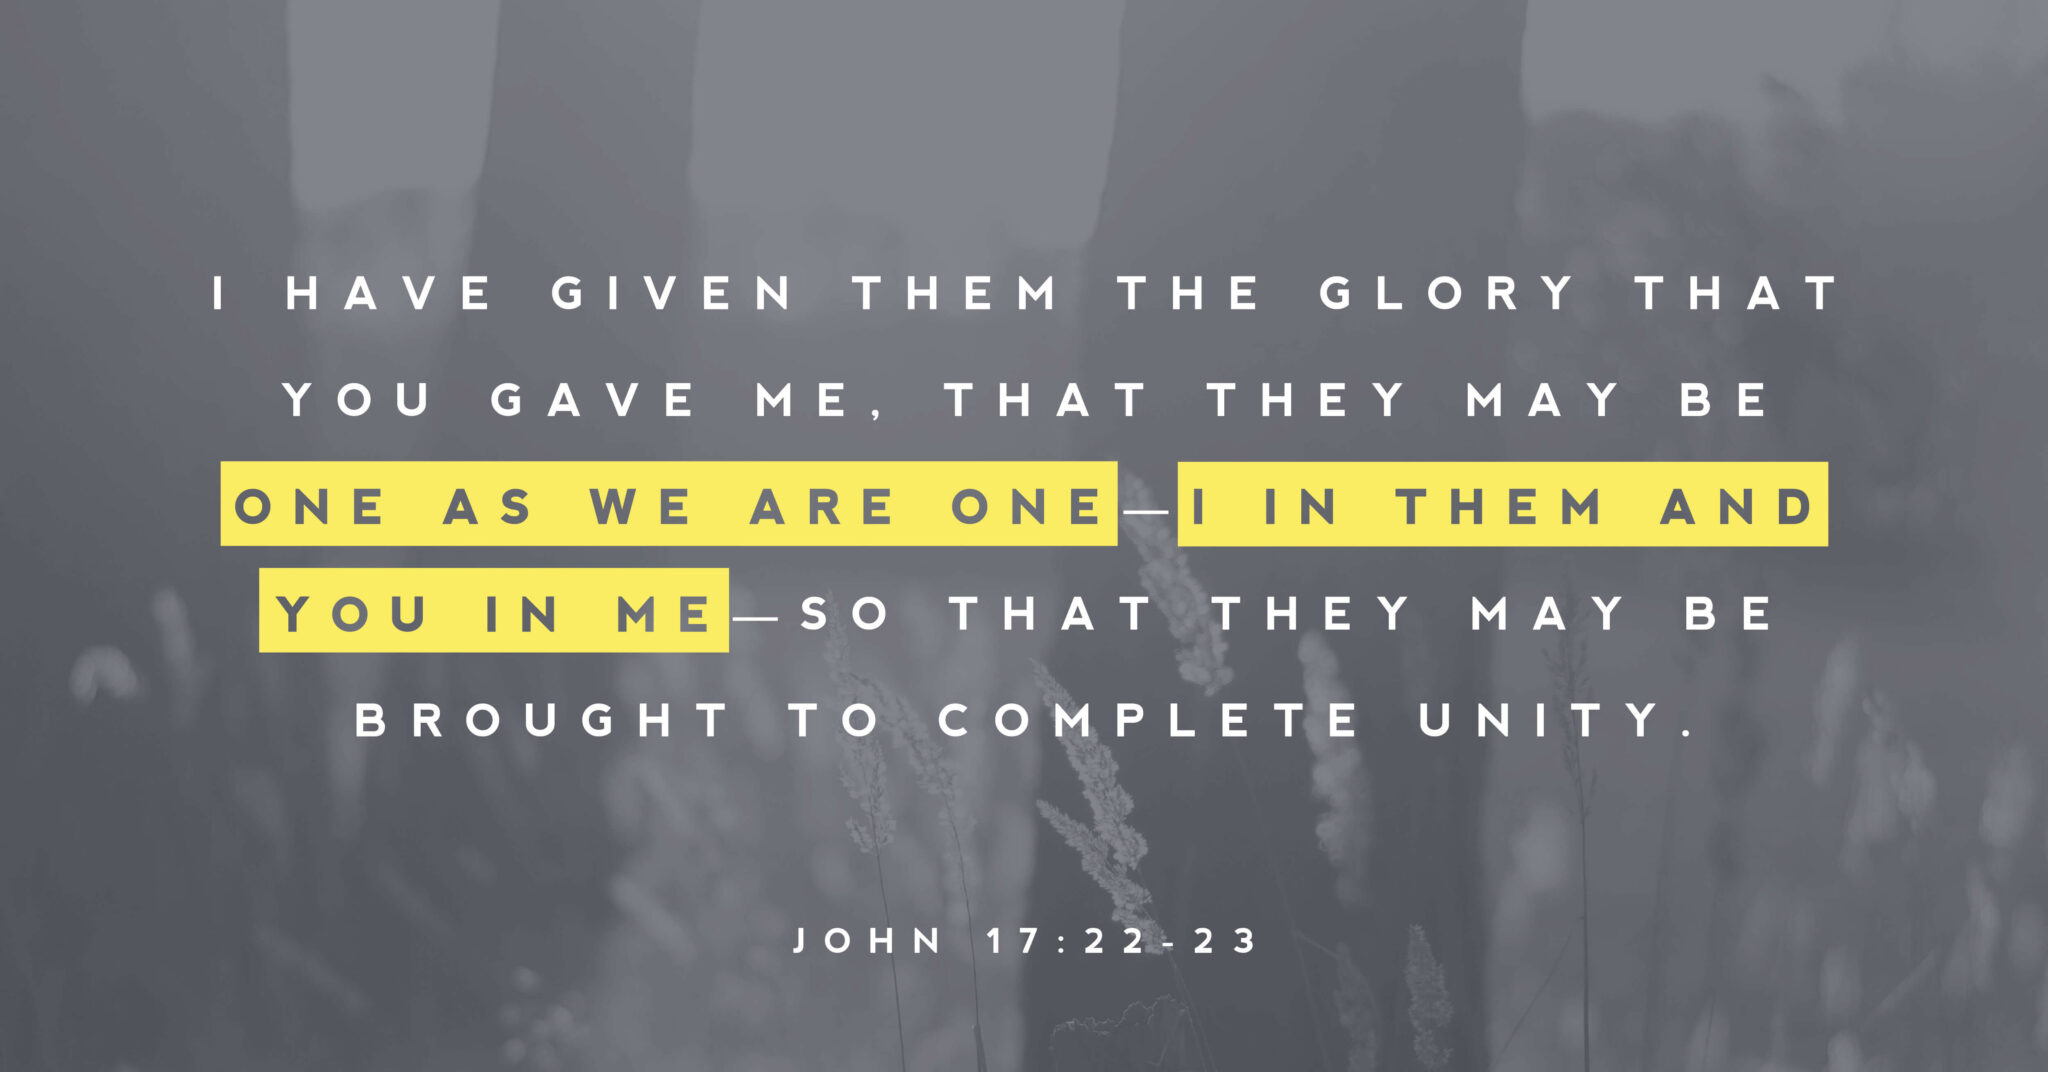 """A picture of wheat with words that read """"I have given them the glory that you gave me. That they may be one as we are one-I in them and you in me-so that they may be brought to complete unity"""" (John 17:22-23)."""